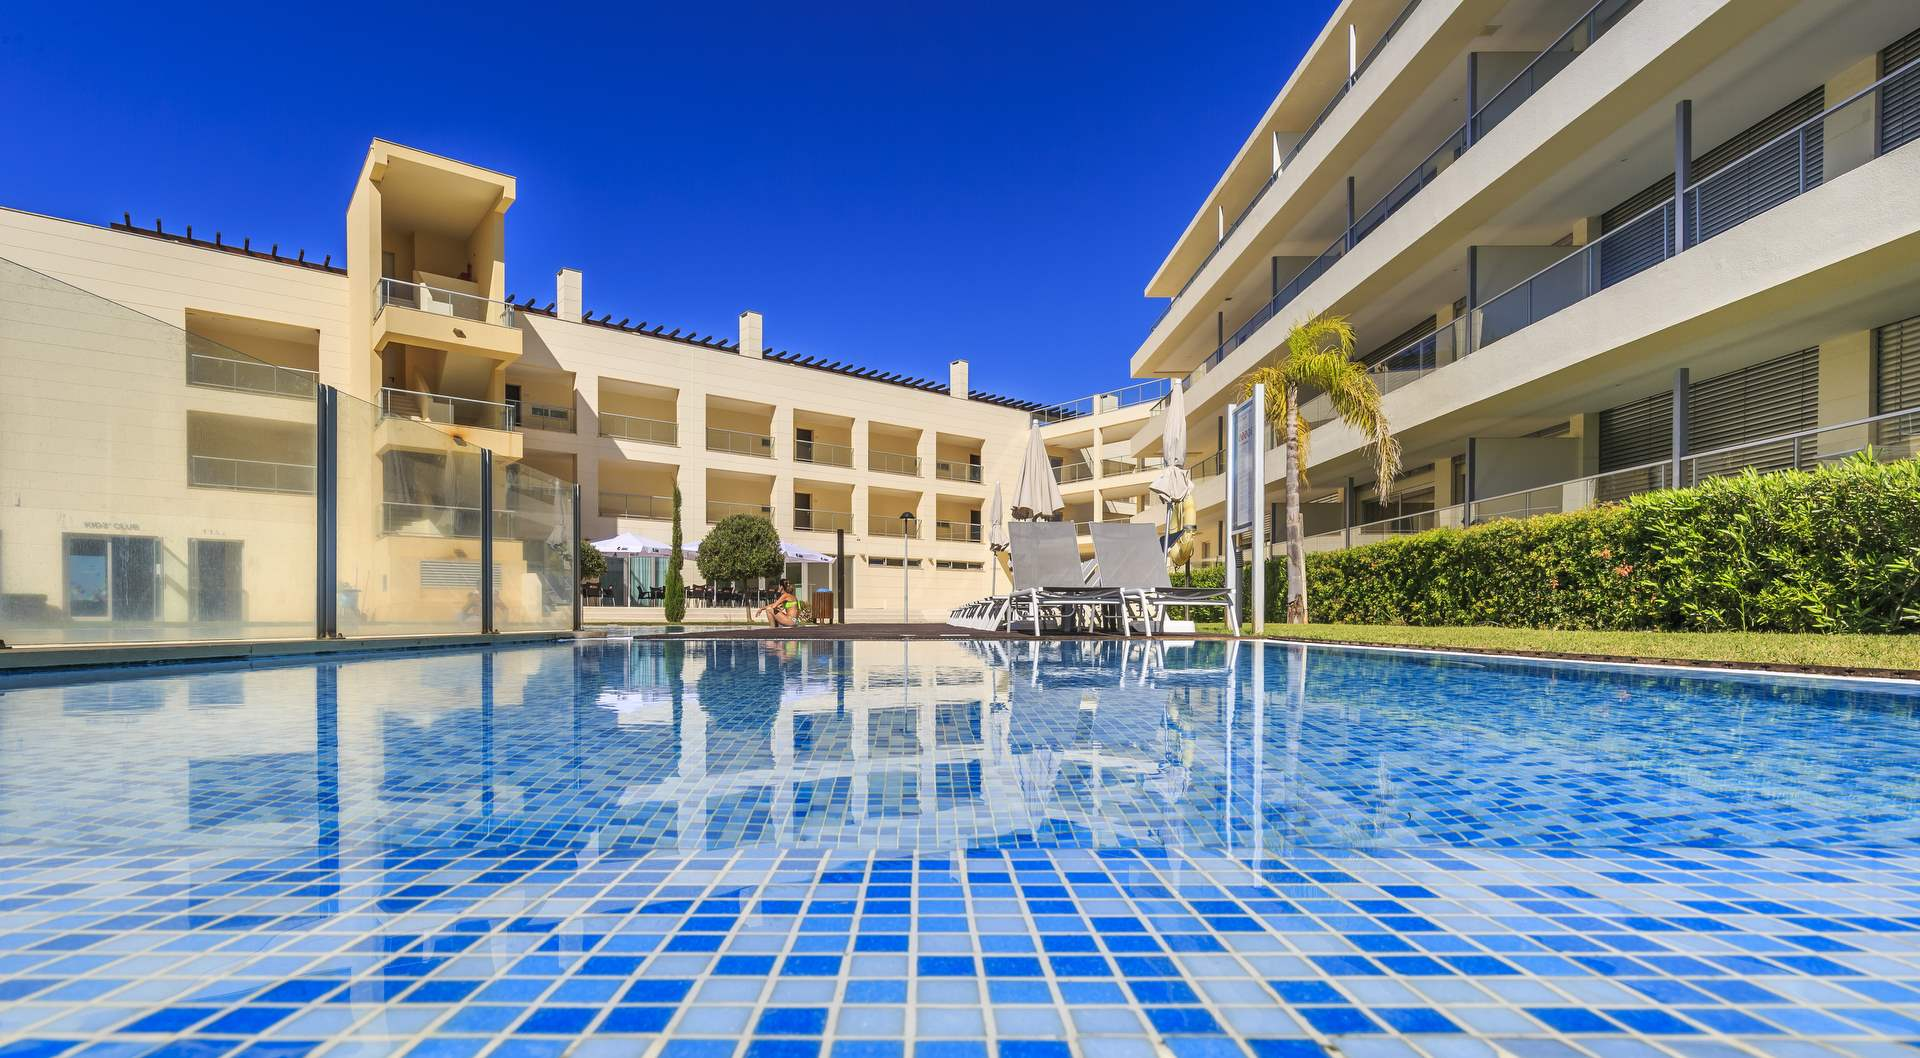 Laguna Resort, Two Bedroom Apartment, 2 bedroom resort in Vilamoura Area, Algarve Photo #8